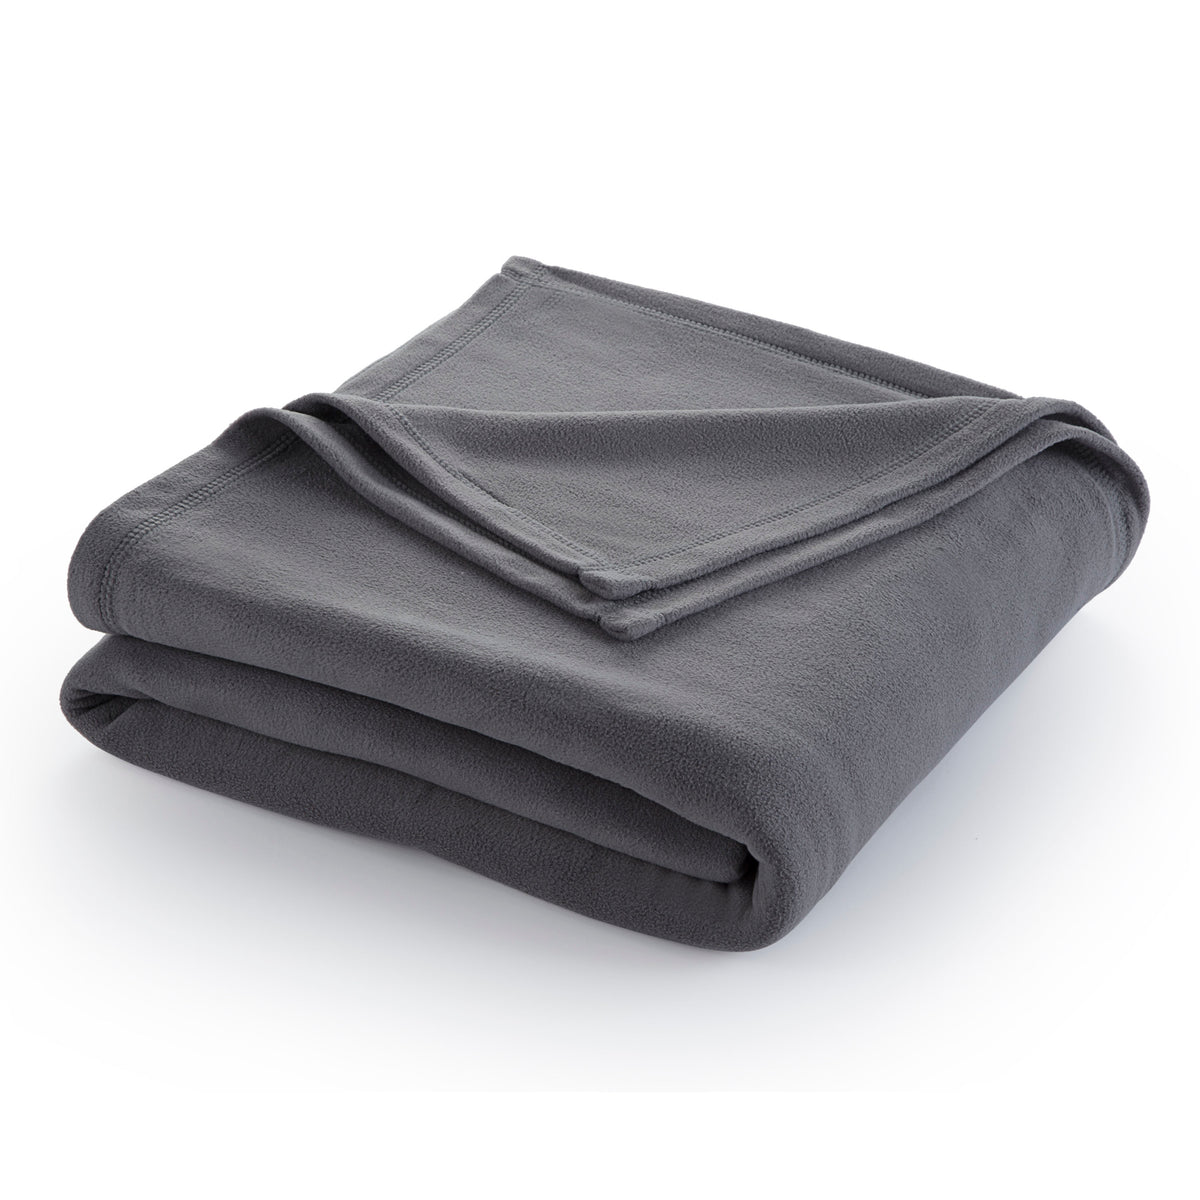 Martex Super Soft Fleece Blanket